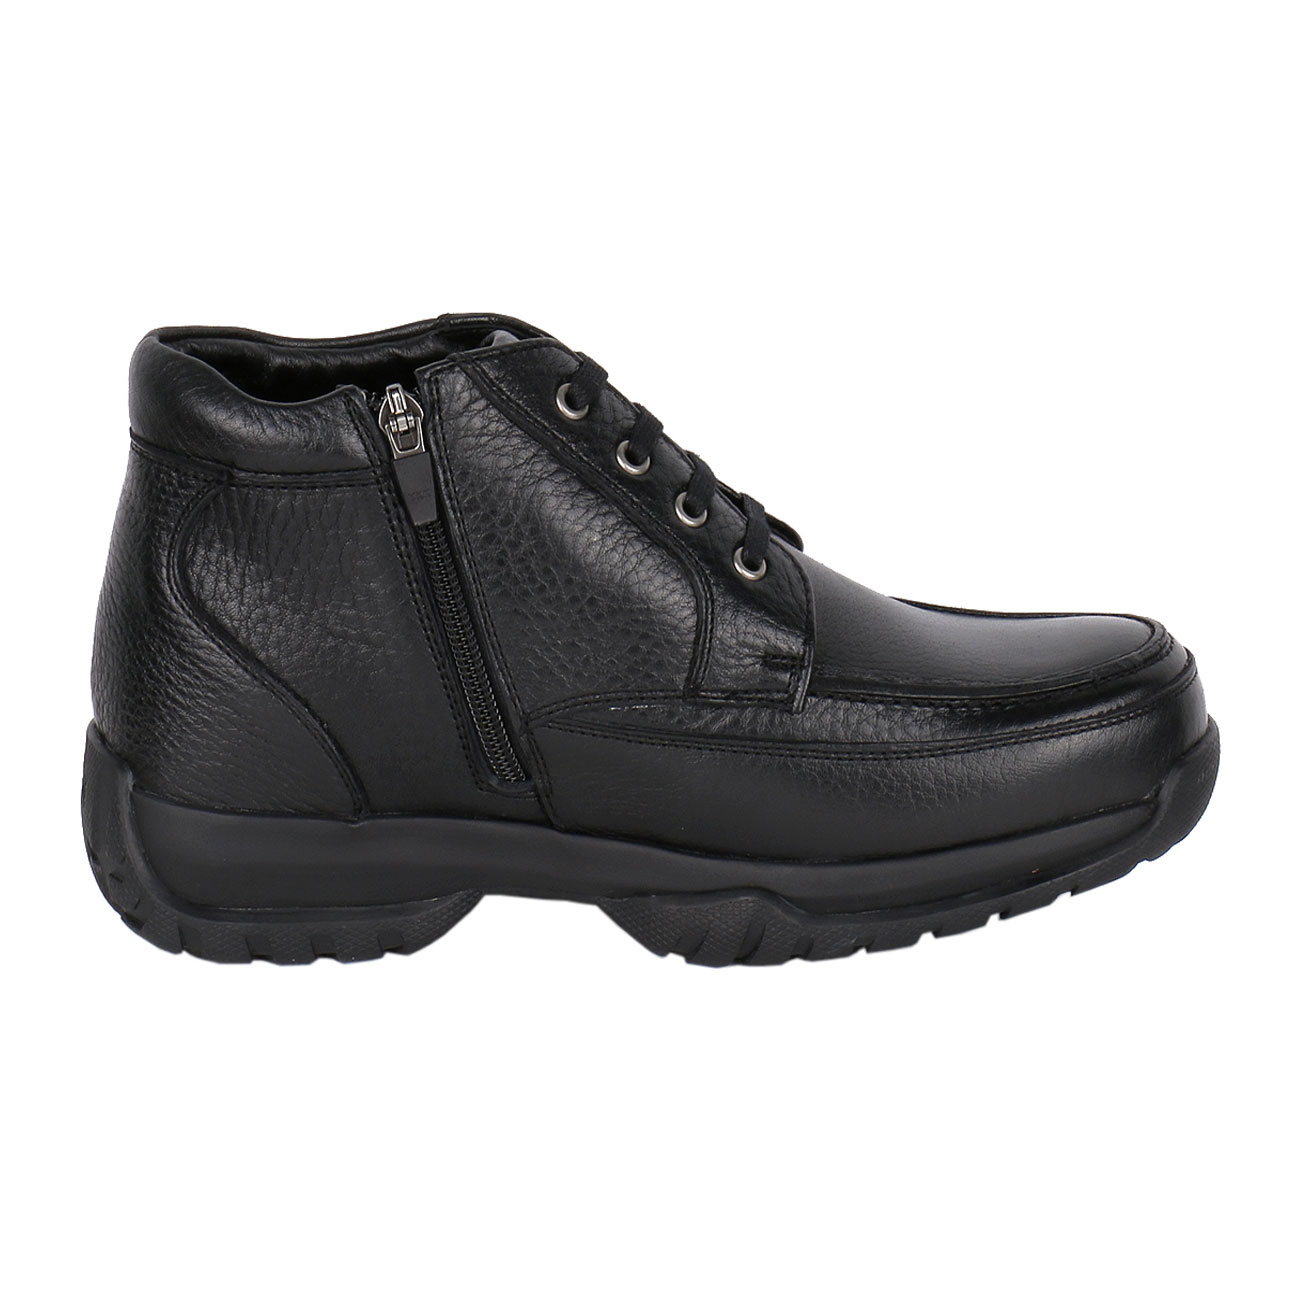 Men's Great Outdoor Height Raising Boot 2.8